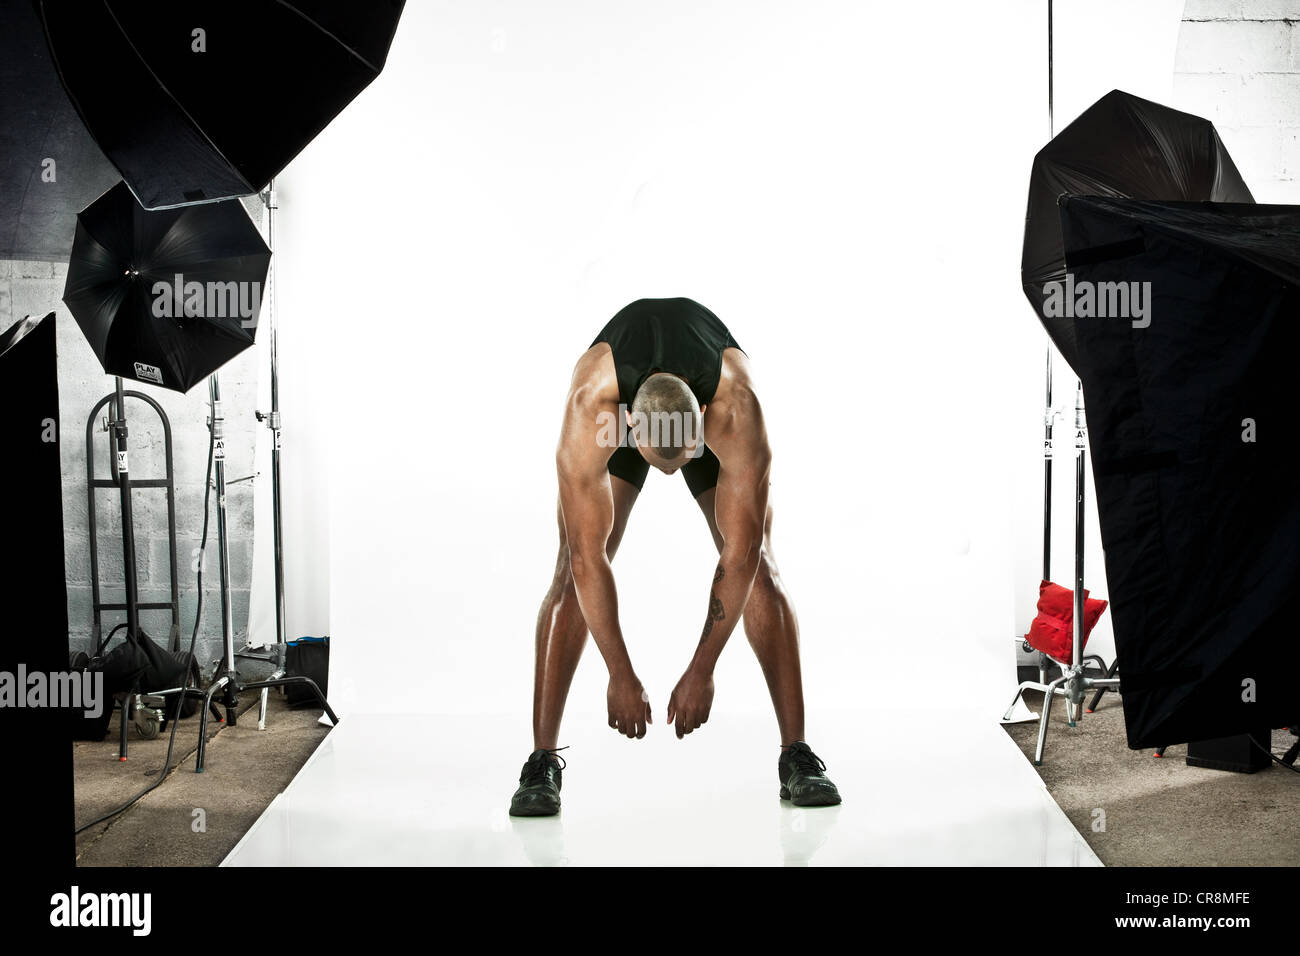 Athlete at photo shoot, stretching - Stock Image